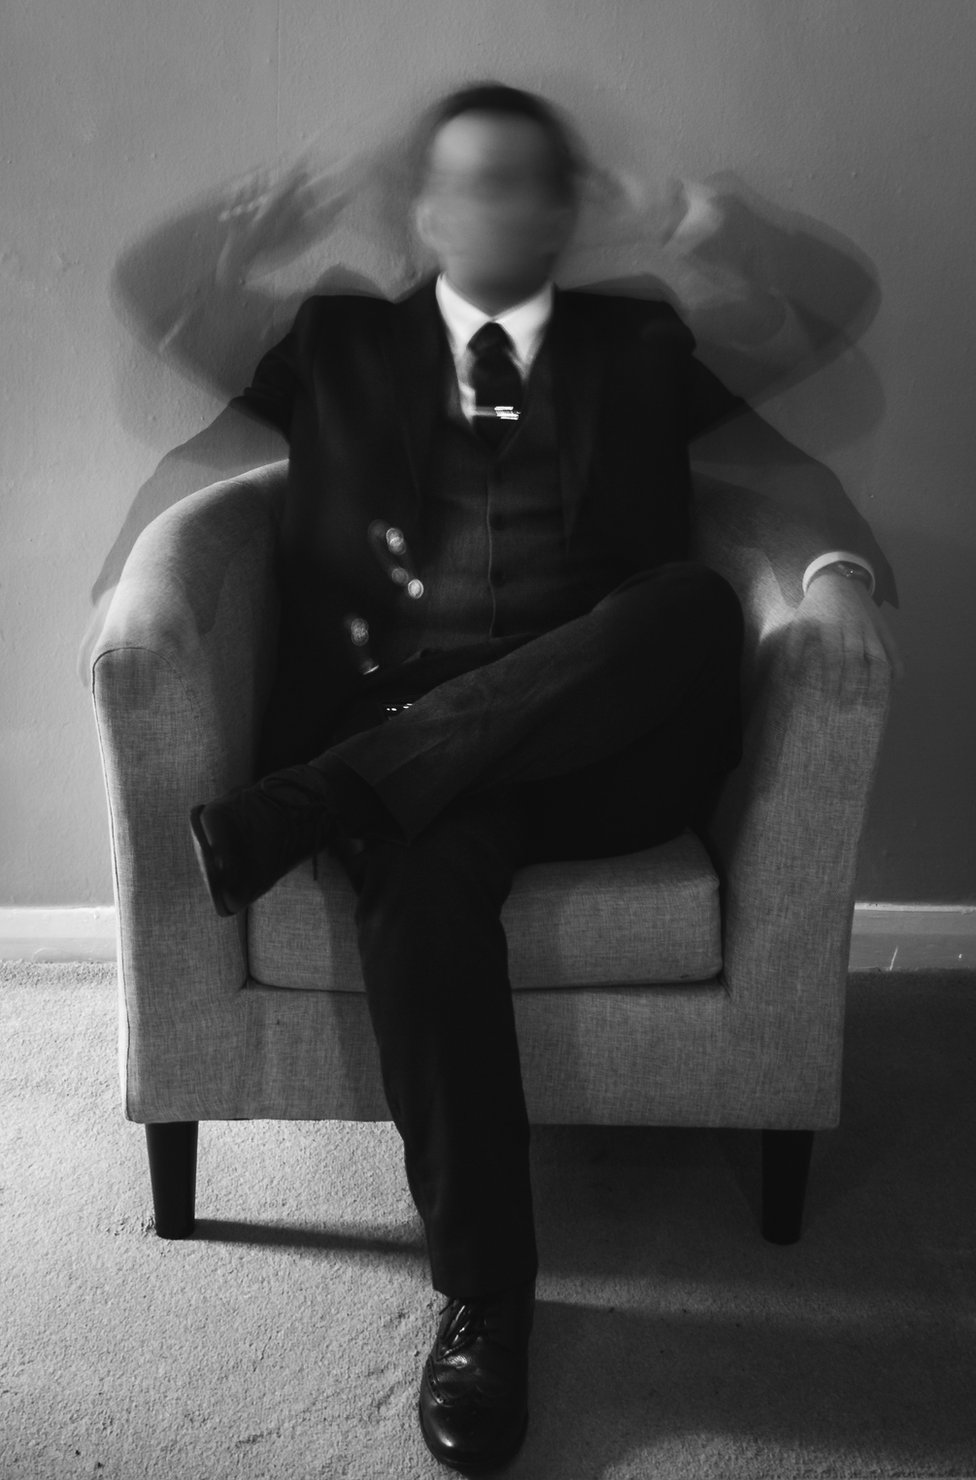 A blurred photo of a man sitting in a chair waving his arms around